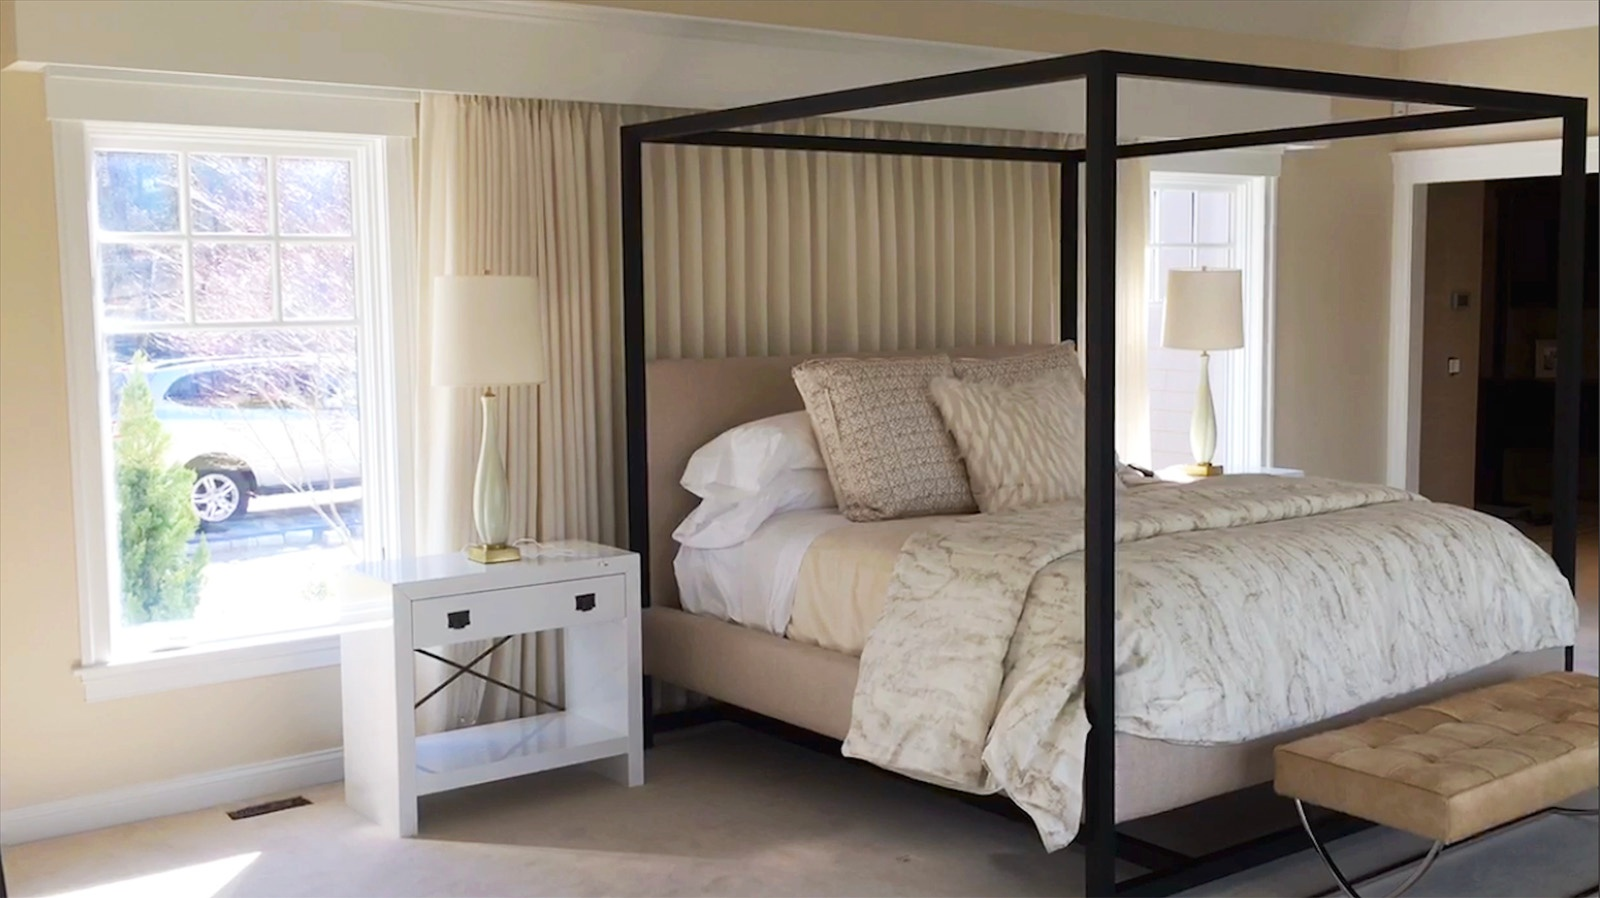 A sunny master bedroom with motorized drapes and room darkening roller shades for light control.